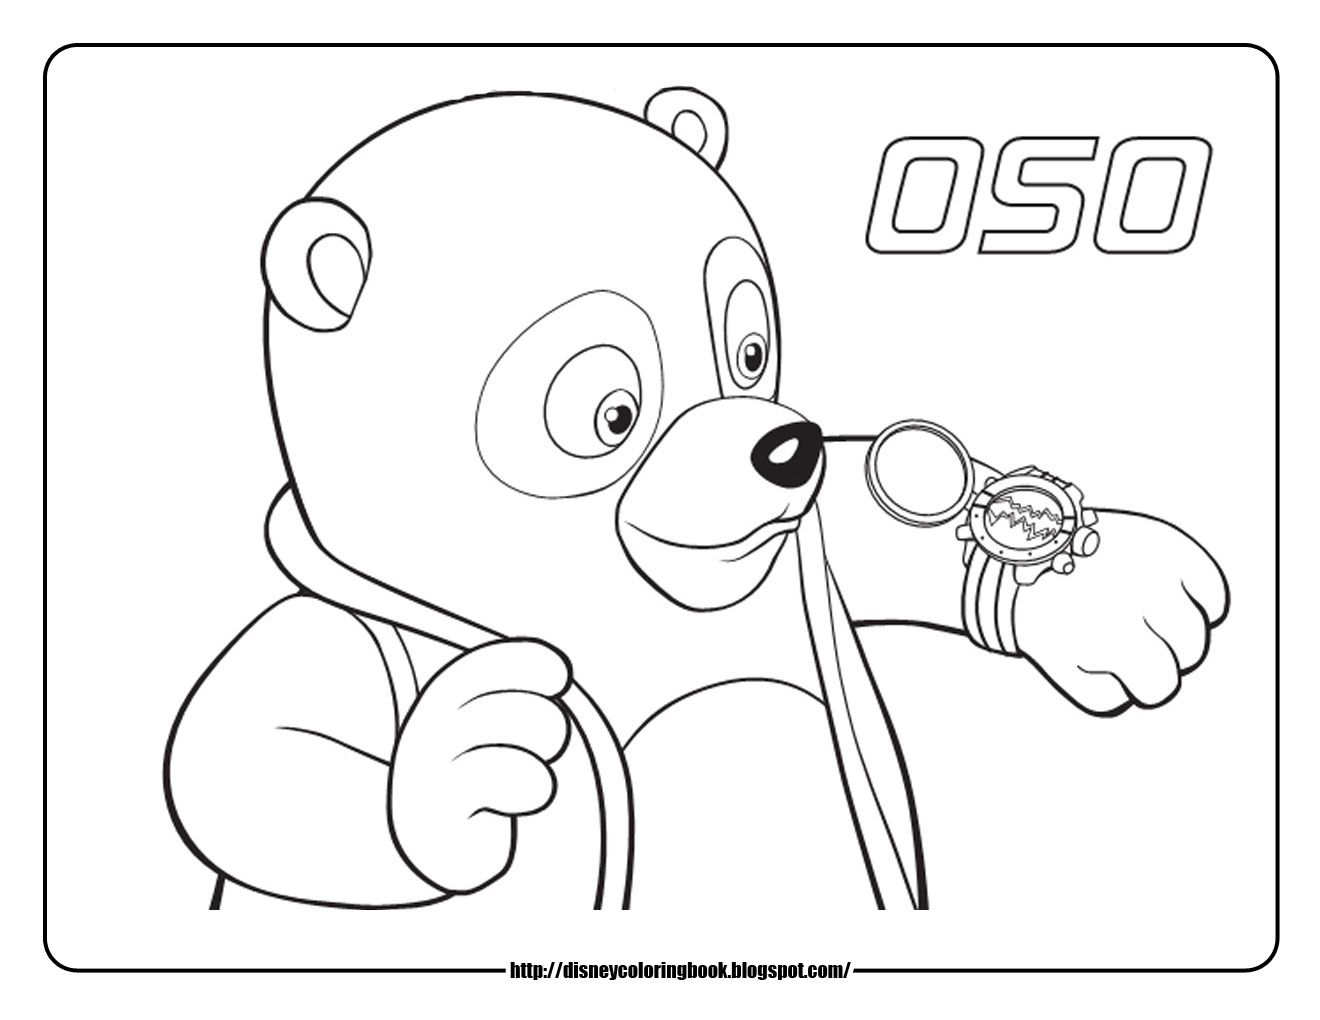 Disney Junior Coloring Pages | Special Agent Oso 1: Free Disney ...